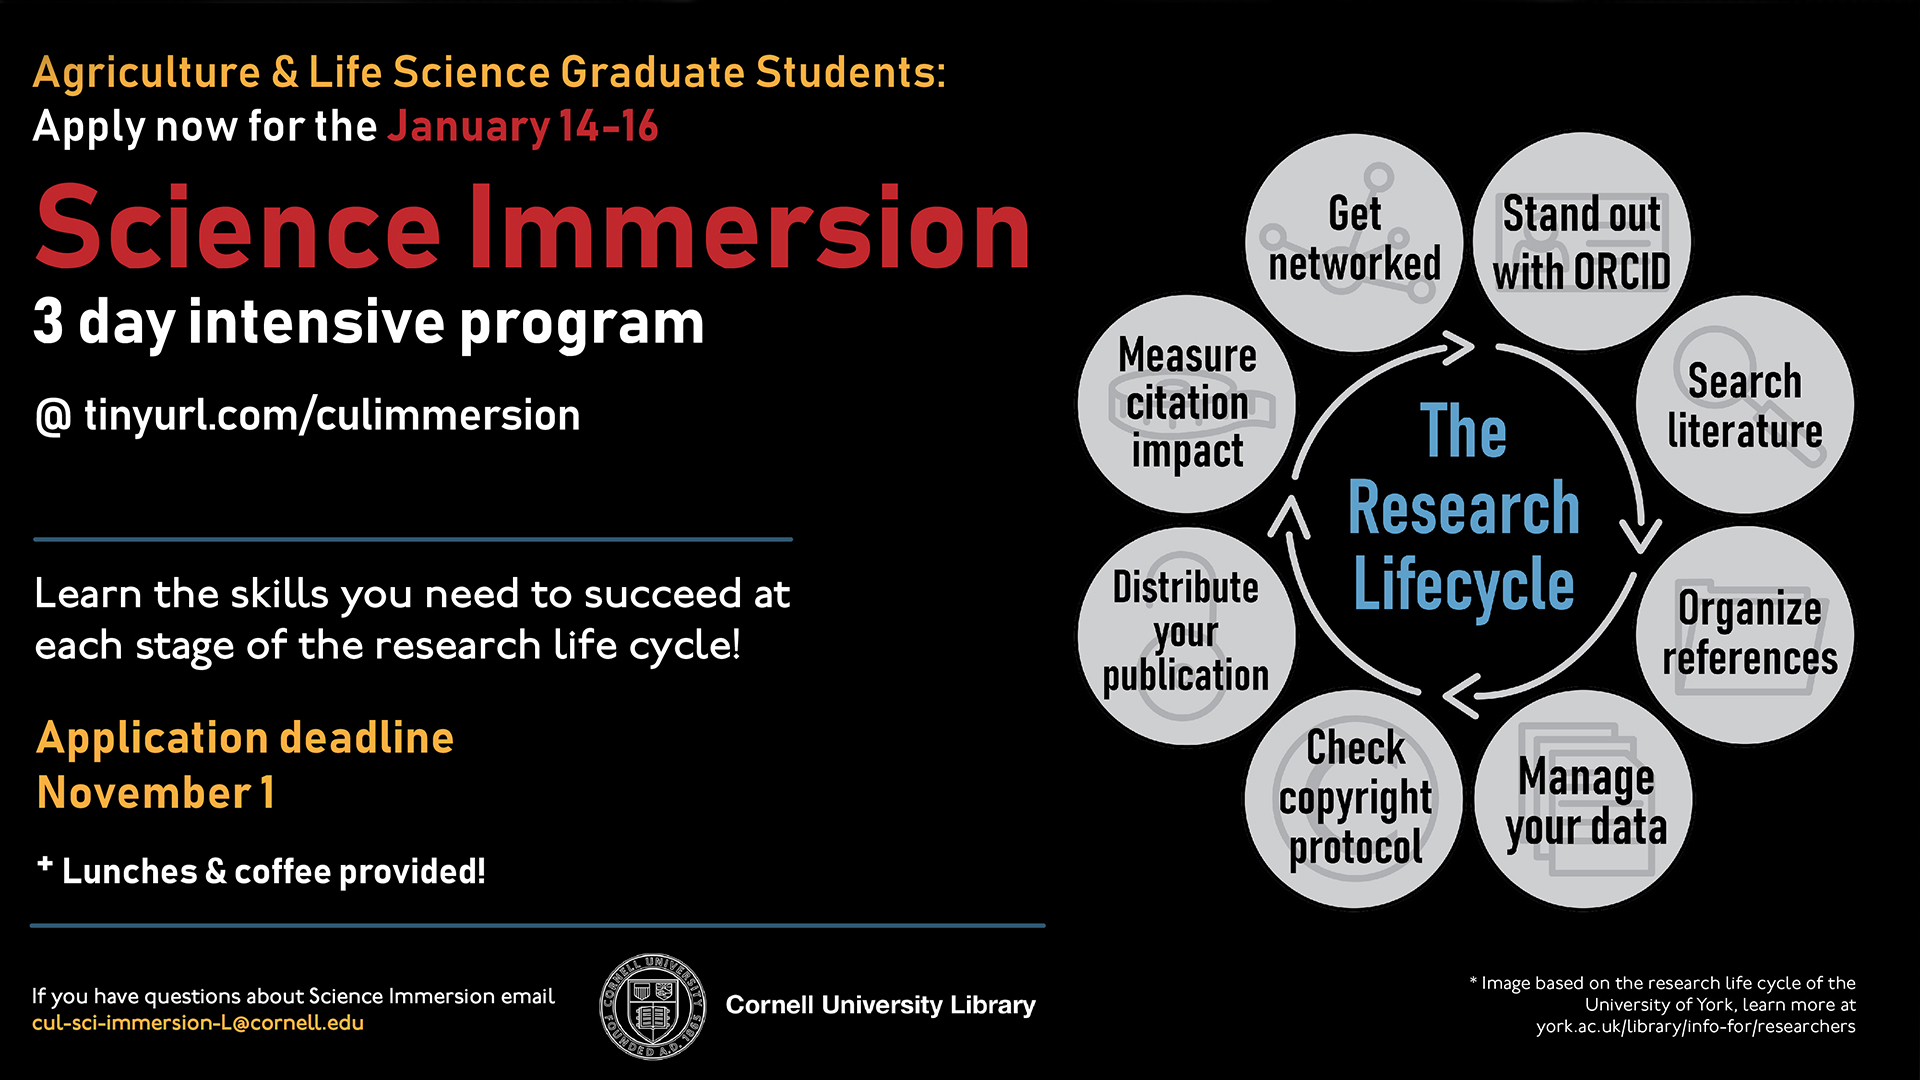 Are you an early career graduate student in the fields of Agriculture and Life Sciences? Would you like to get a leg up by learning the skills you need to succeed at each stage of the research lifecycle? Please consider applying for the Library's Science Immersion Program, an intensive, three-day series of workshops on research skills for graduate students. The program will be held in Mann Library from January 9-11, with lunch provided. Can't make those dates? Check out our recorded sessions from 2018 @ tinyurl.com/ScienceImmersion2018.  The program aims to provide participants with practical technologies, tools and research skills to become more efficient scholars. Hands-on workshops will cover such topics as:   advanced citation management   complex search strategies   author rights   data management   science communication  research impact  And much more…  A complete itinerary of the program will be available at the end of the Fall 2018 semester. The deadline for applications is December 1, 2018. Application can be found here – tinyurl.com/ScienceImmersion2019  If you have any questions, please send a message to cul-sci-immersion-l@cornell.edu